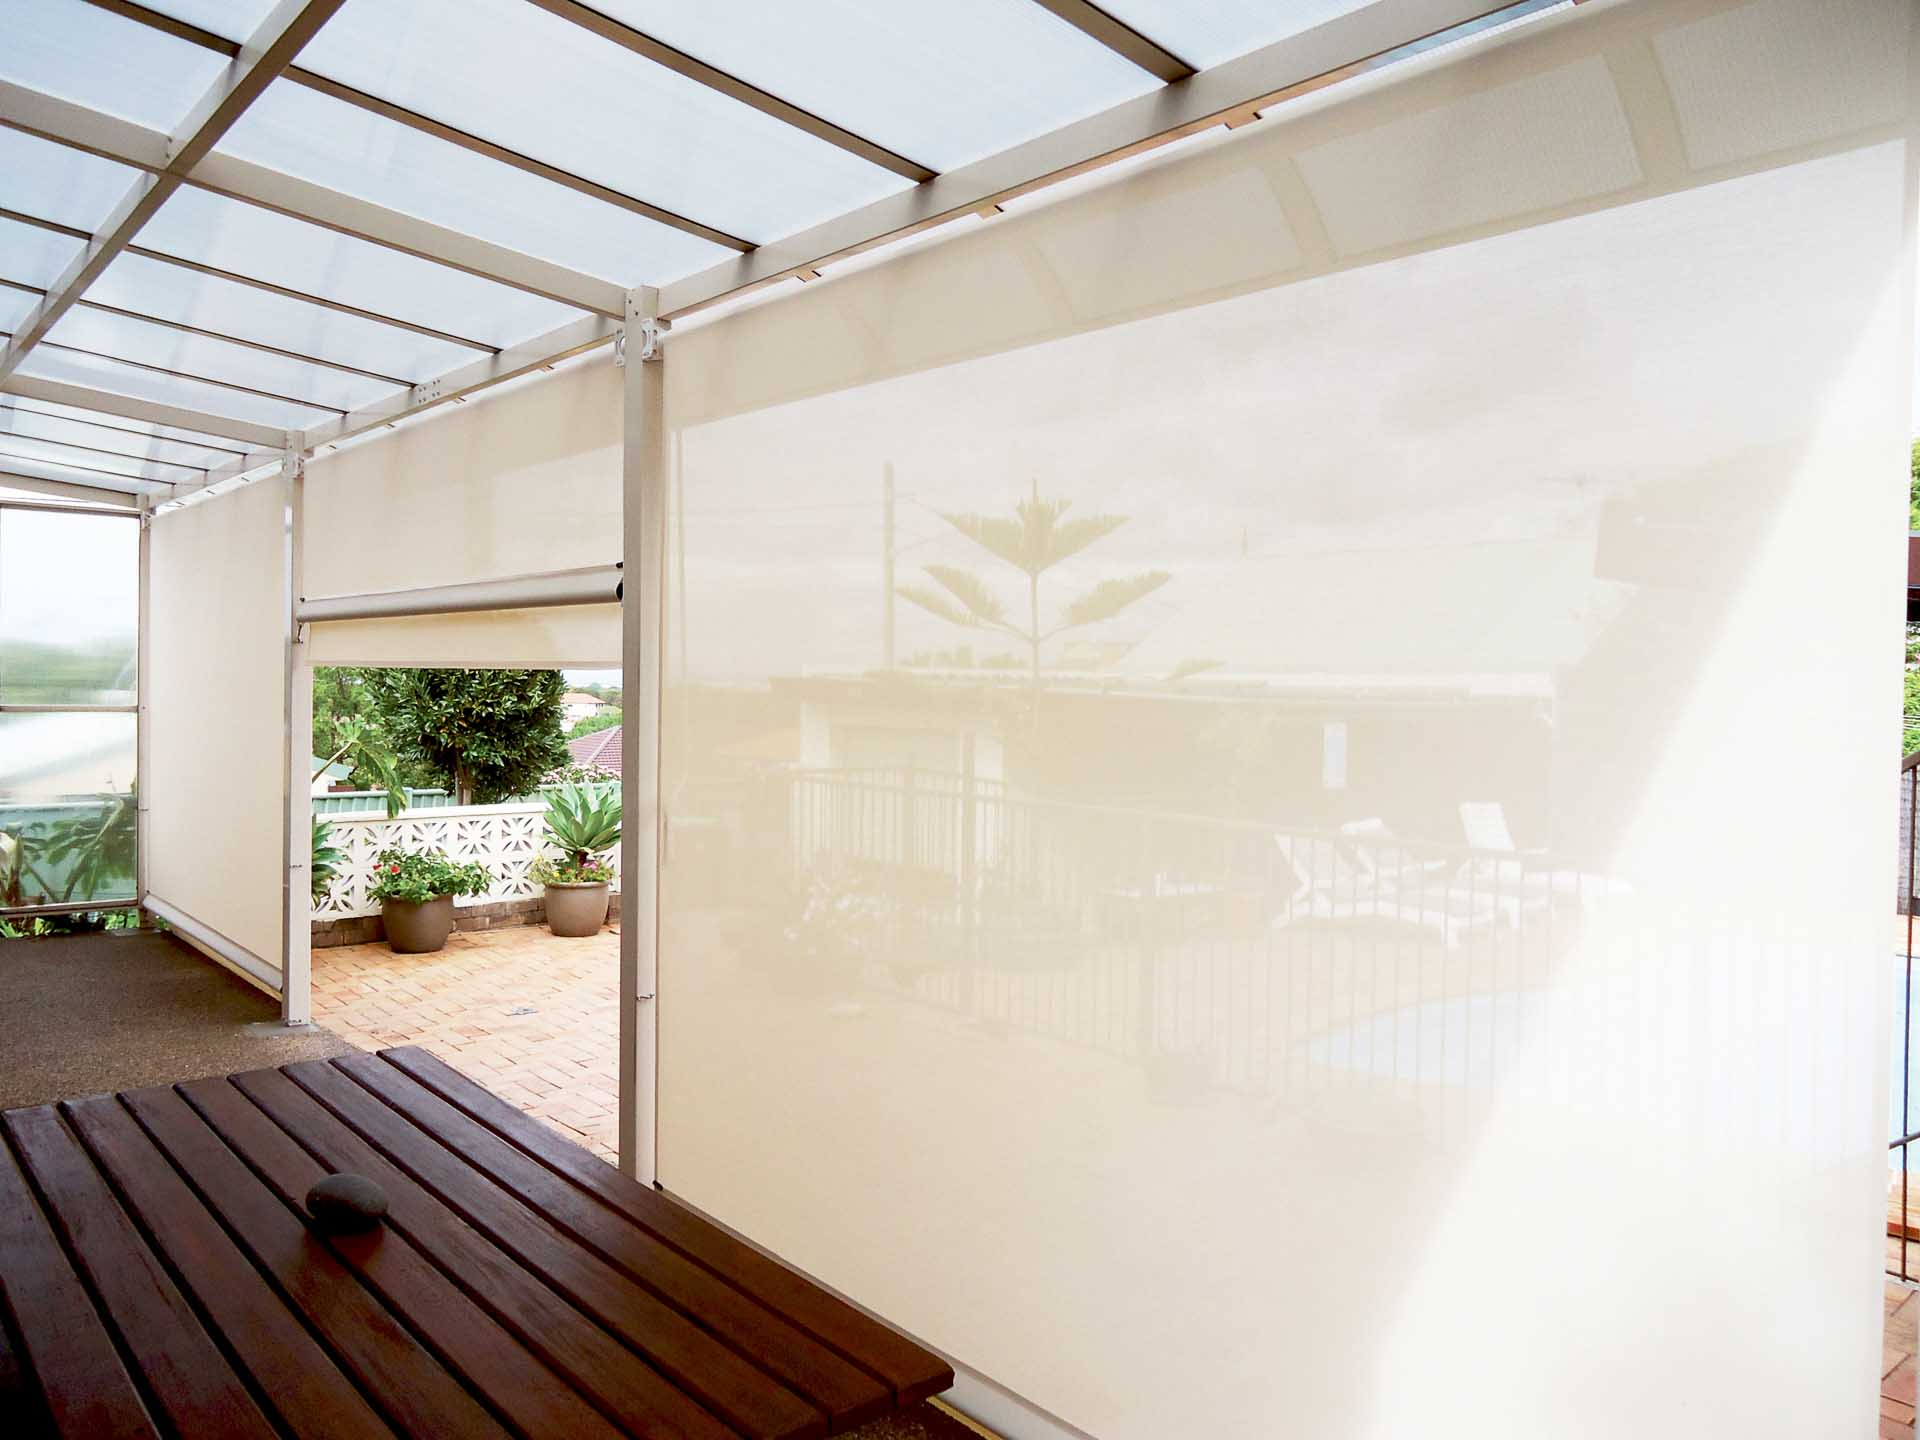 Outdoor blinds: the best option for your verandah, pergola or patio - How do Outdoor Blinds work, Australian Outdoor Living.